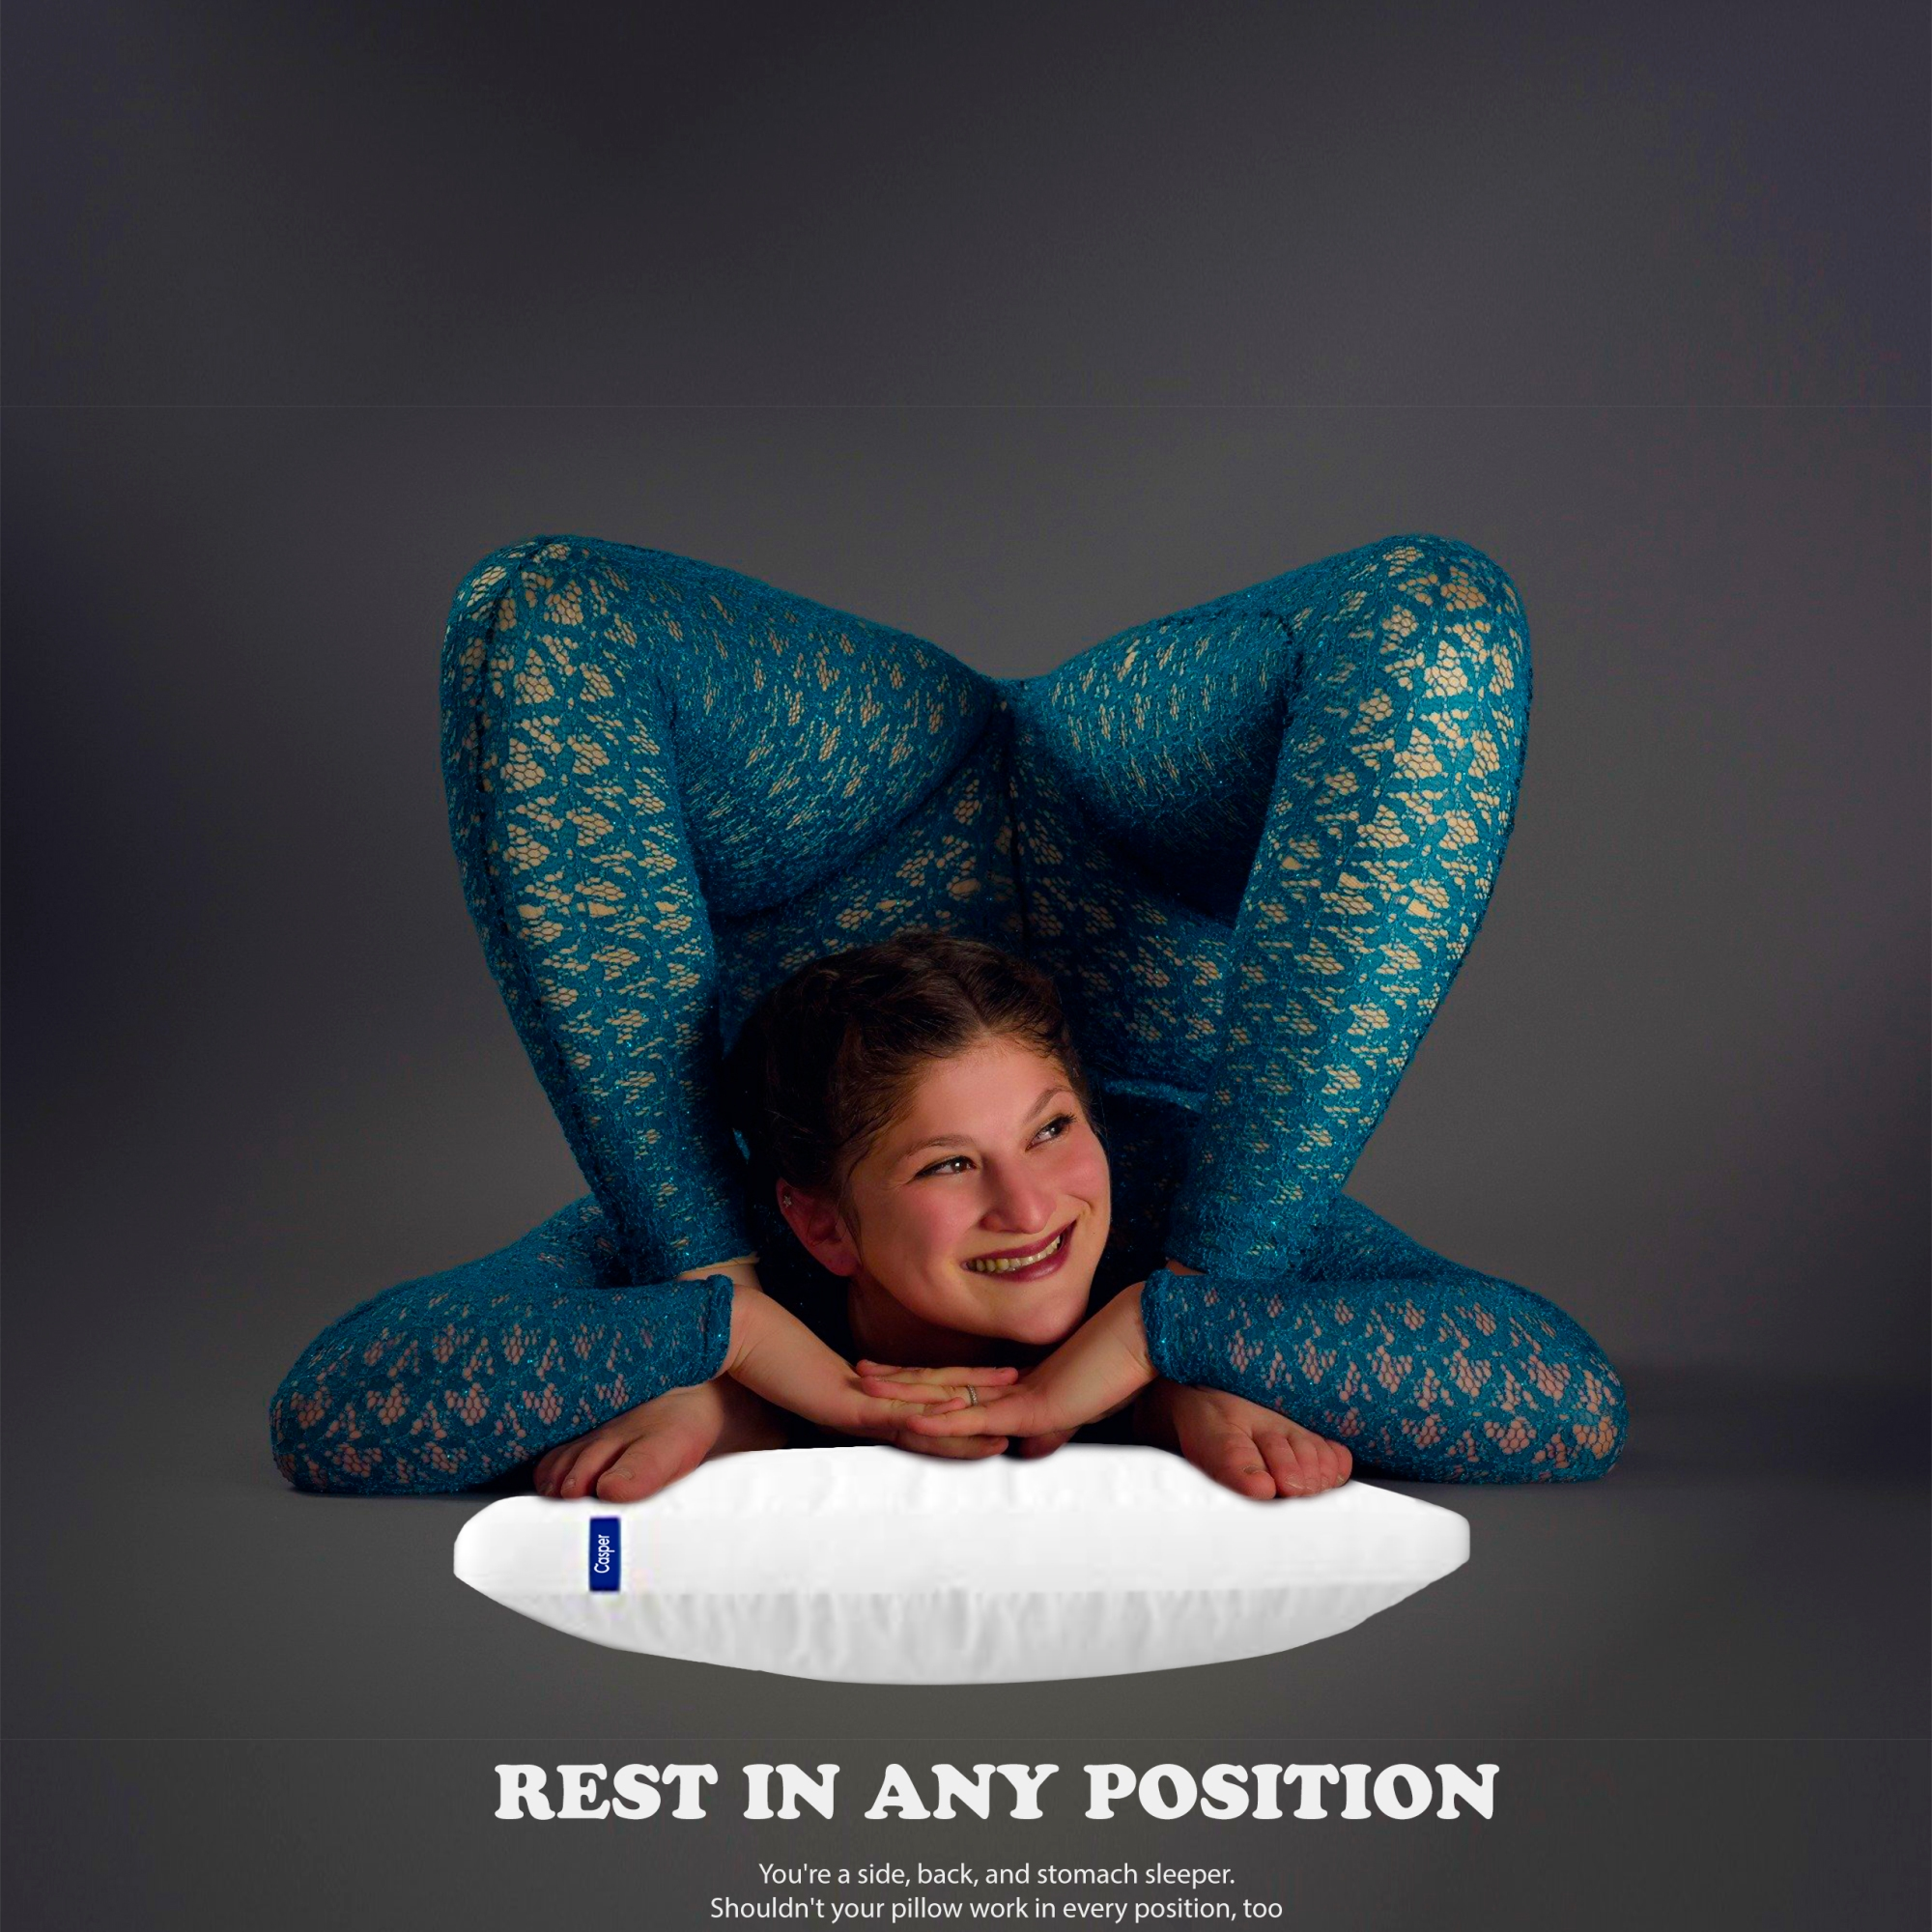 Contortionist girl resting on a pillow